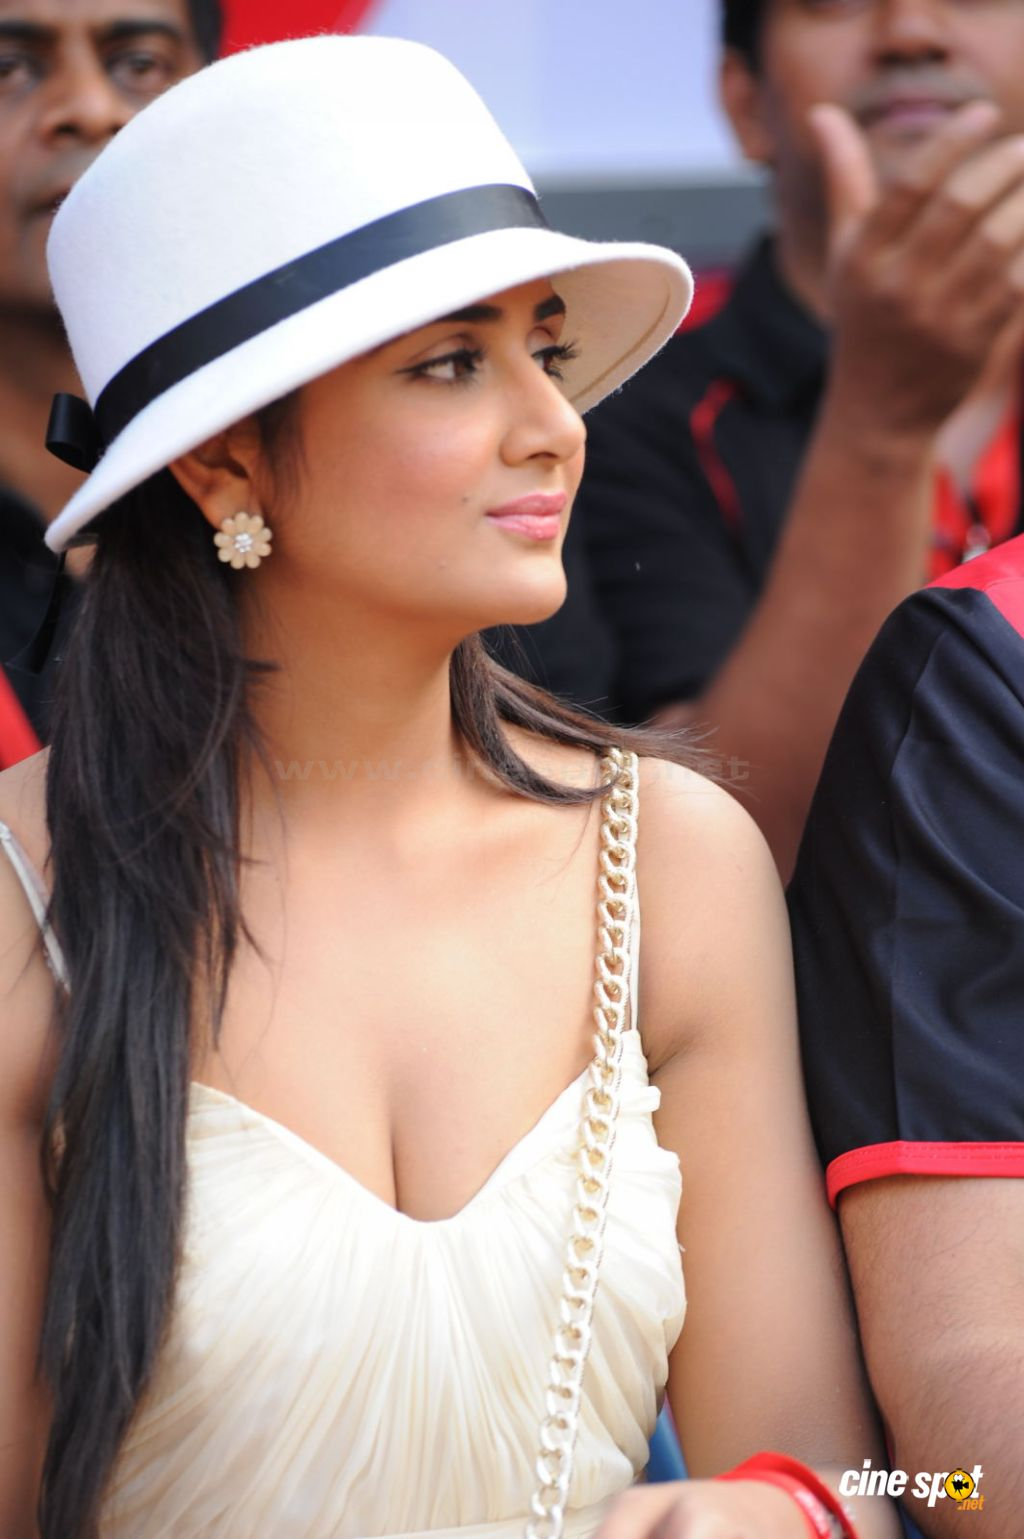 Parul Yadav CCL1 - Parul Yadav Hot Pics from CCL